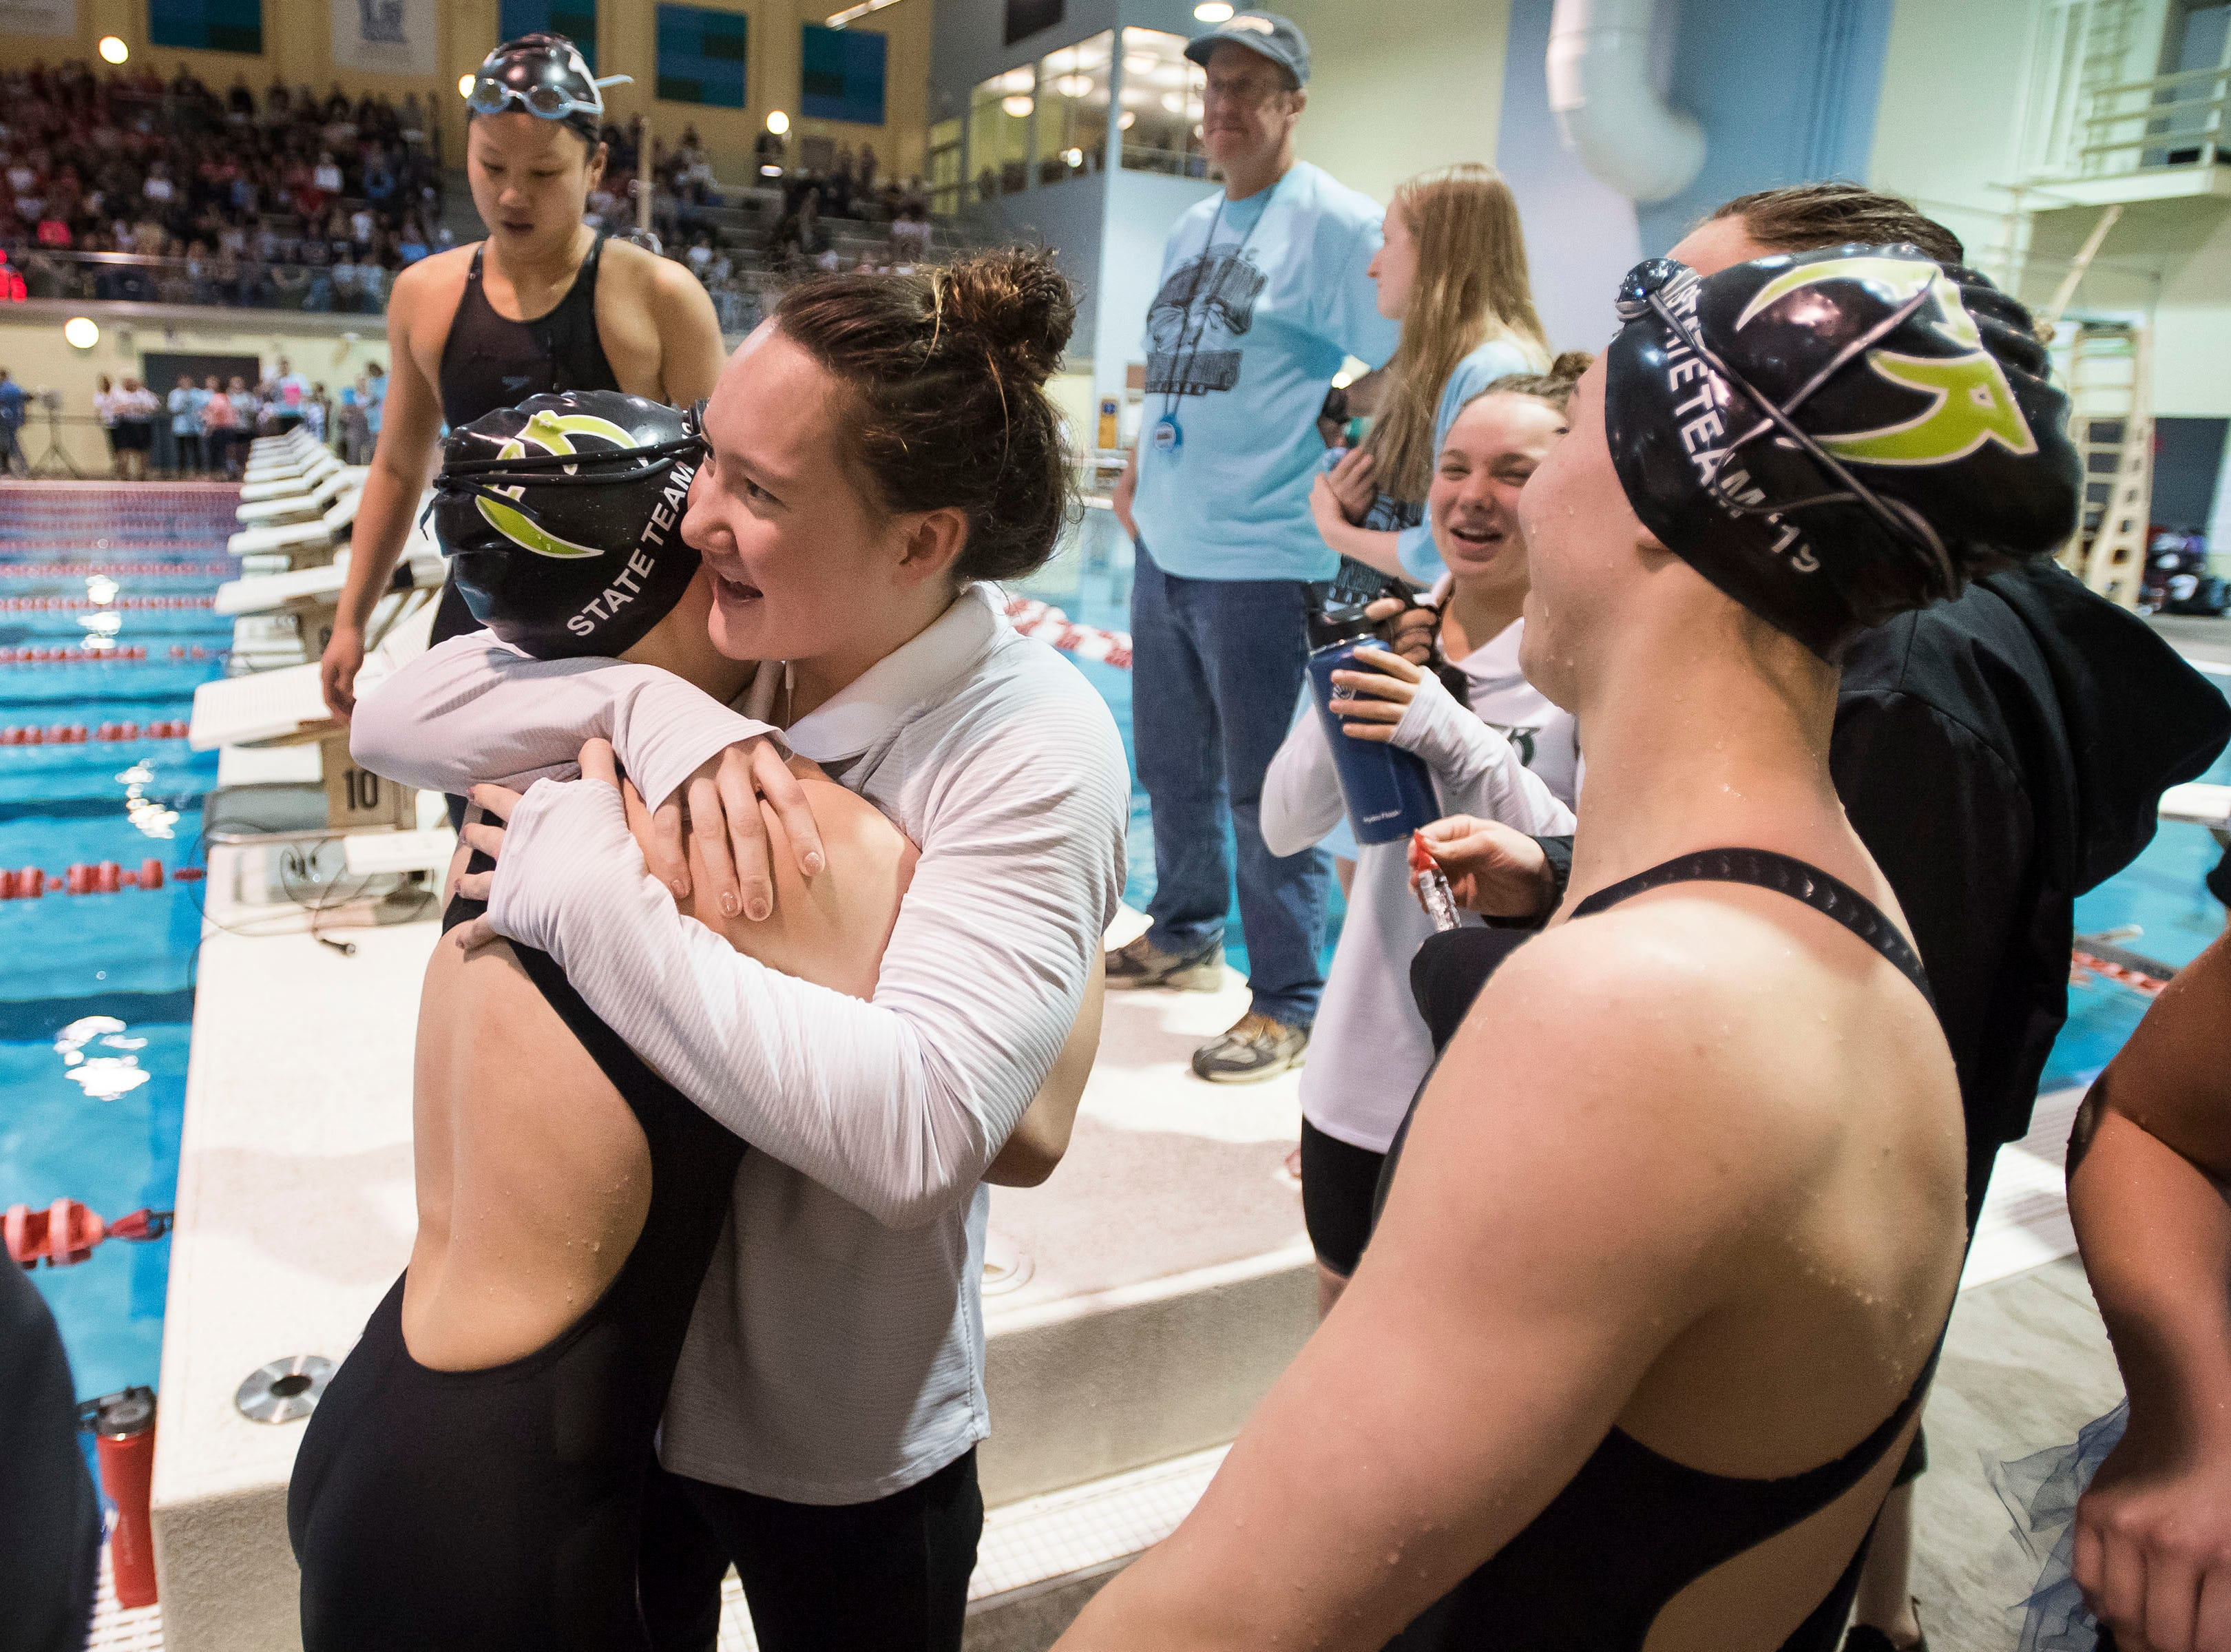 Fossil Ridge senior Coleen Gillilan hugs her younger sister, freshman Renee Gillilan, after Renee won the women's 100 yard butterfly, breaking Coleen's pool record in the race, as seen on Saturday, Feb. 9, 2019, at Veterans Memorial Aquatic Center in Thornton, Colo.